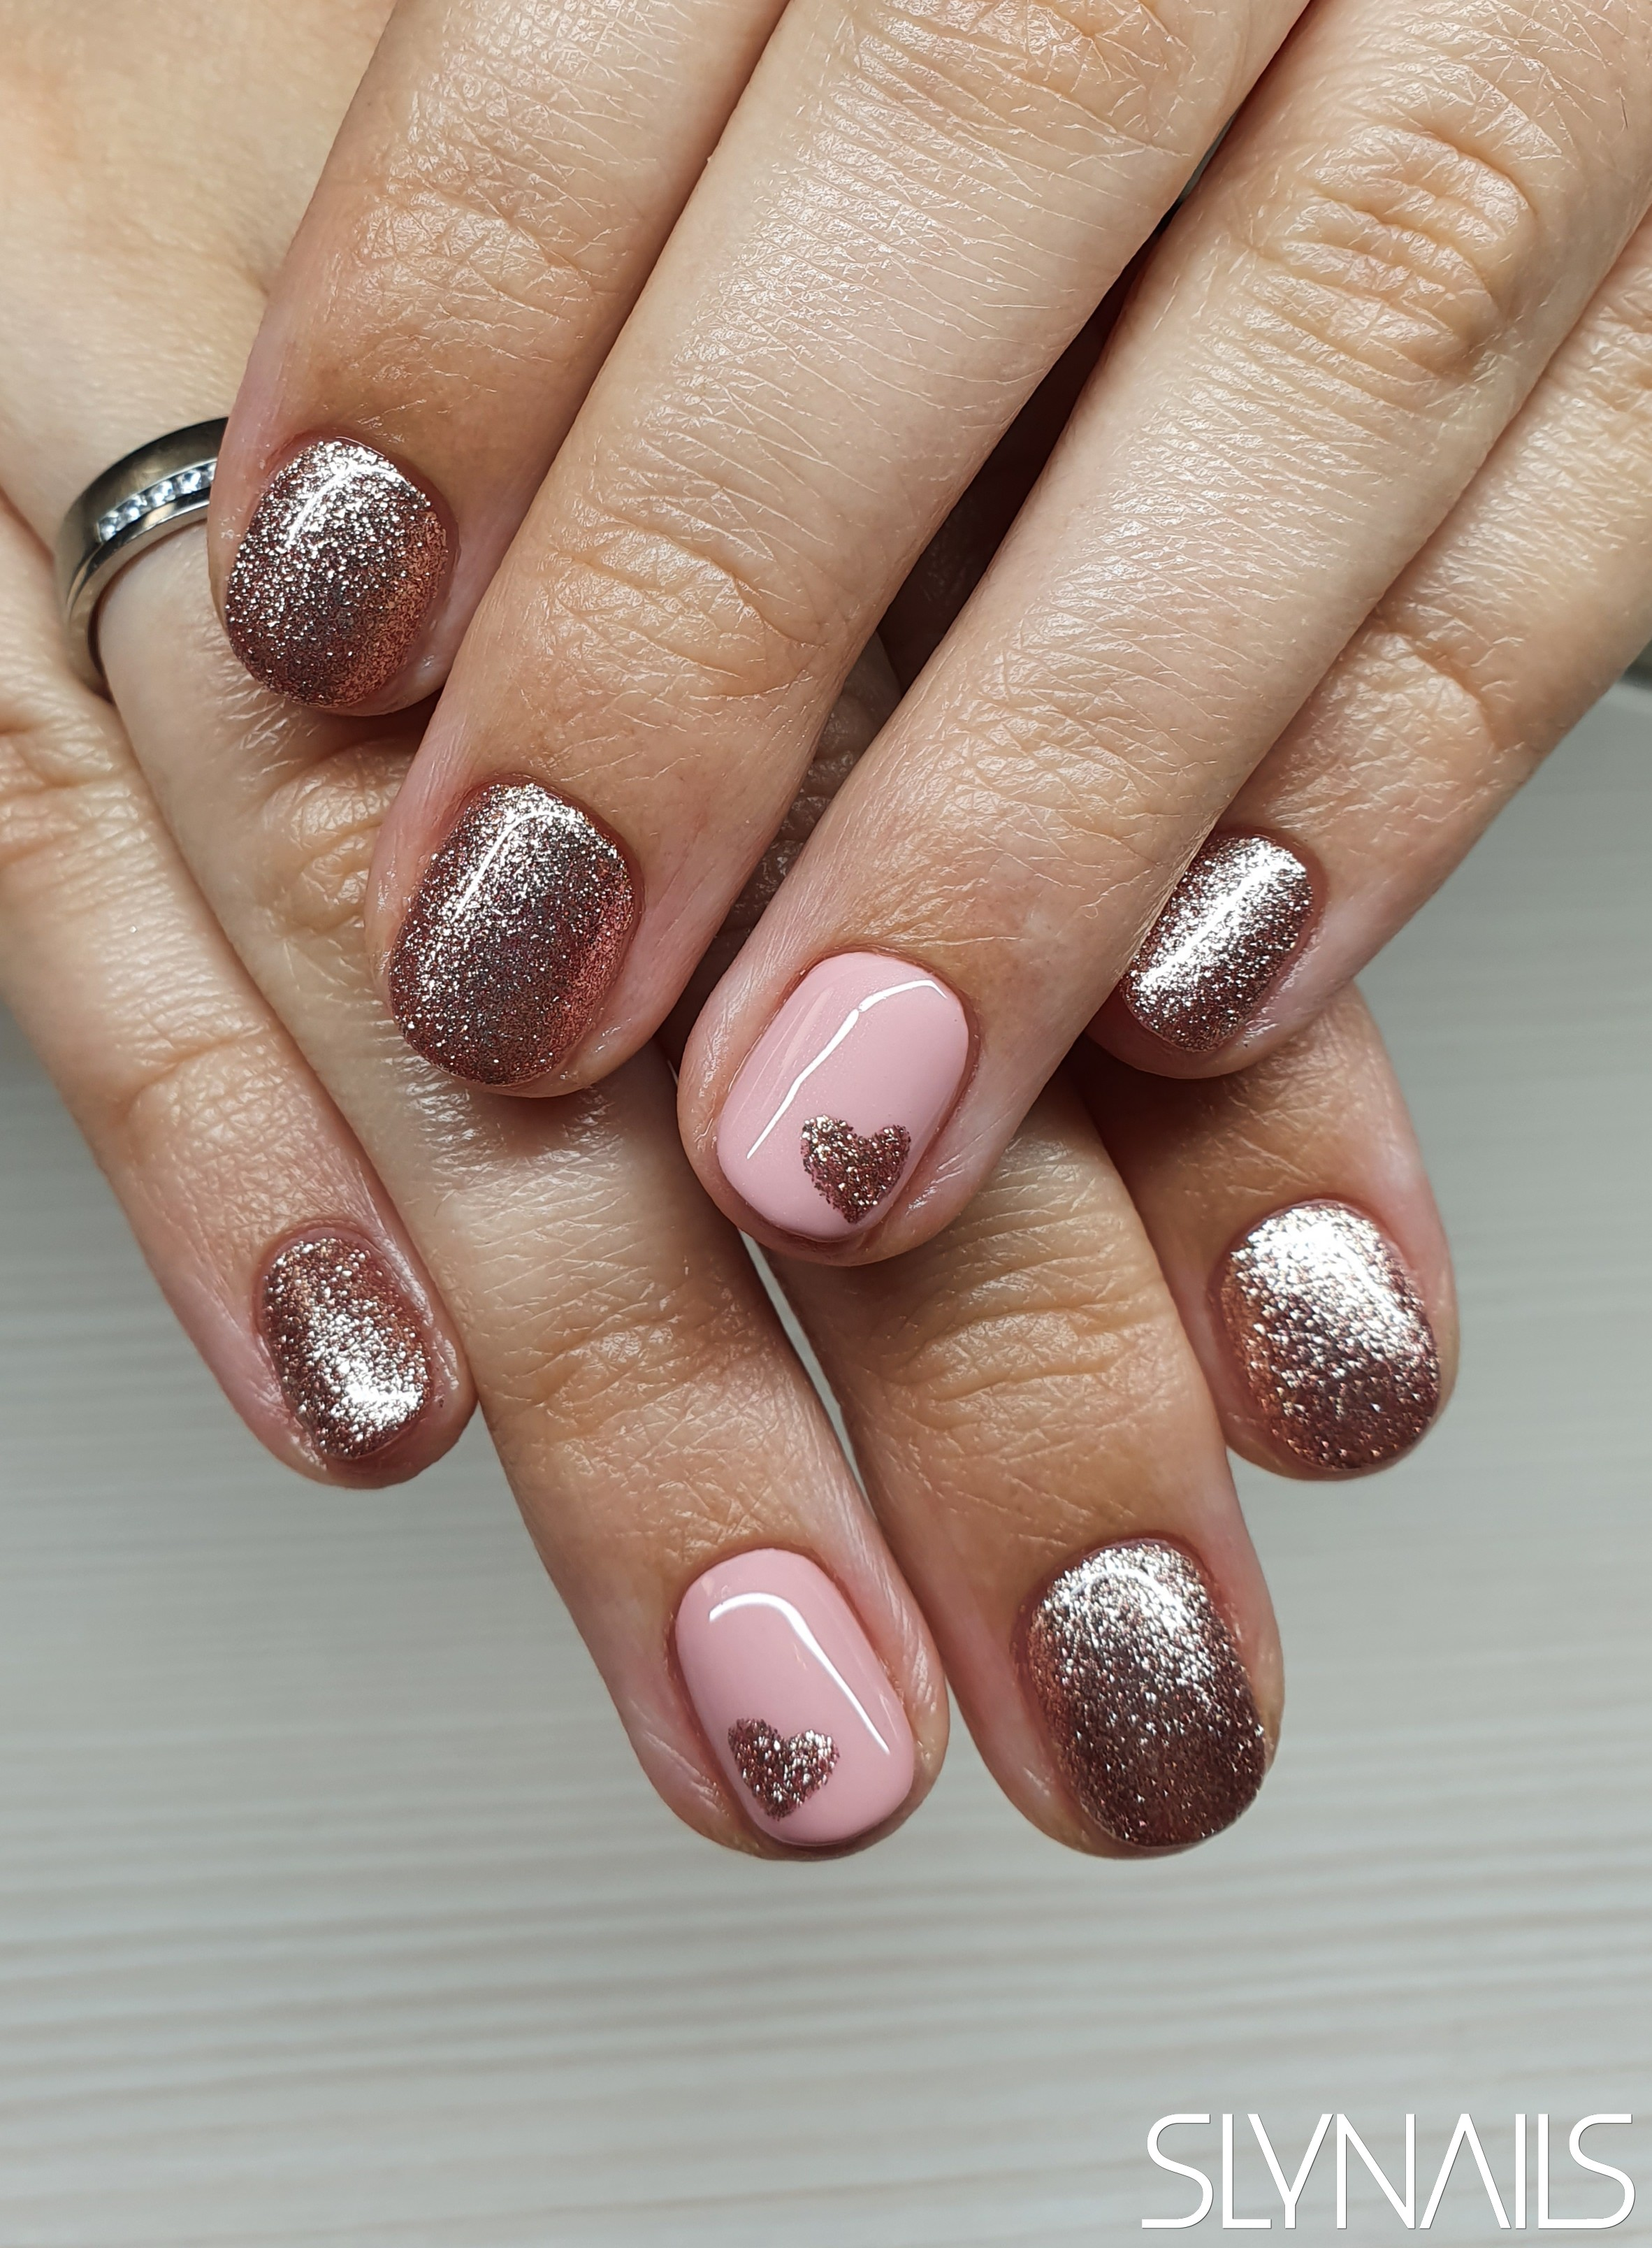 Gel-lac (gel polish), Bronze, Pink, Art gel decorations, One color, Rounded, Valentine's Day